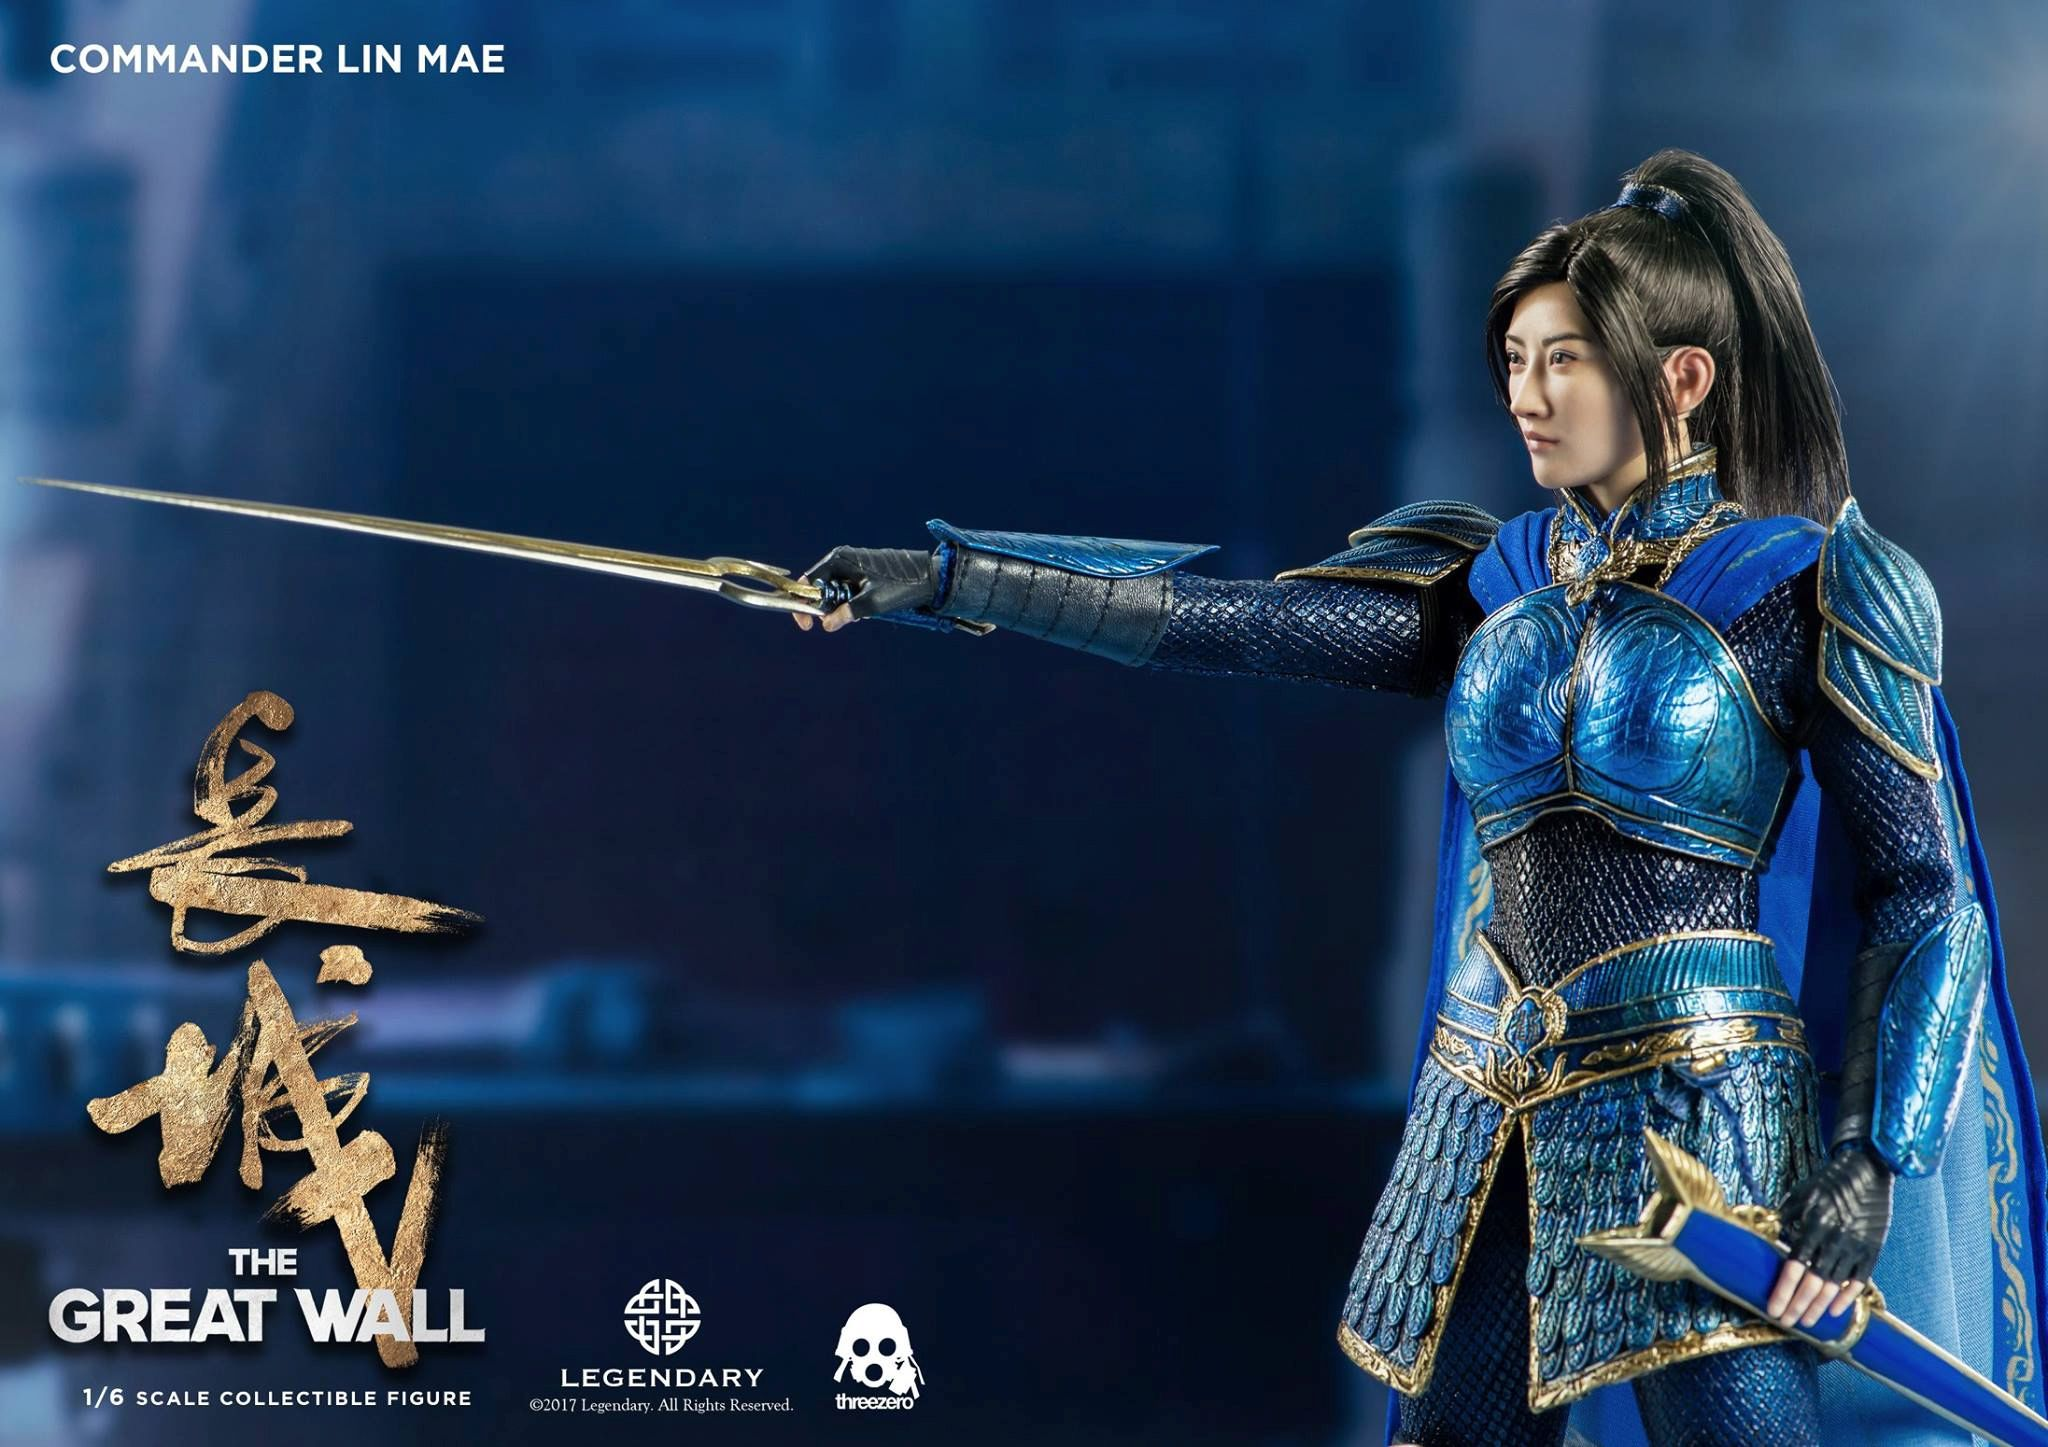 Lin-Mae-The-Great-Wall-Collectible-Action-Figure-08